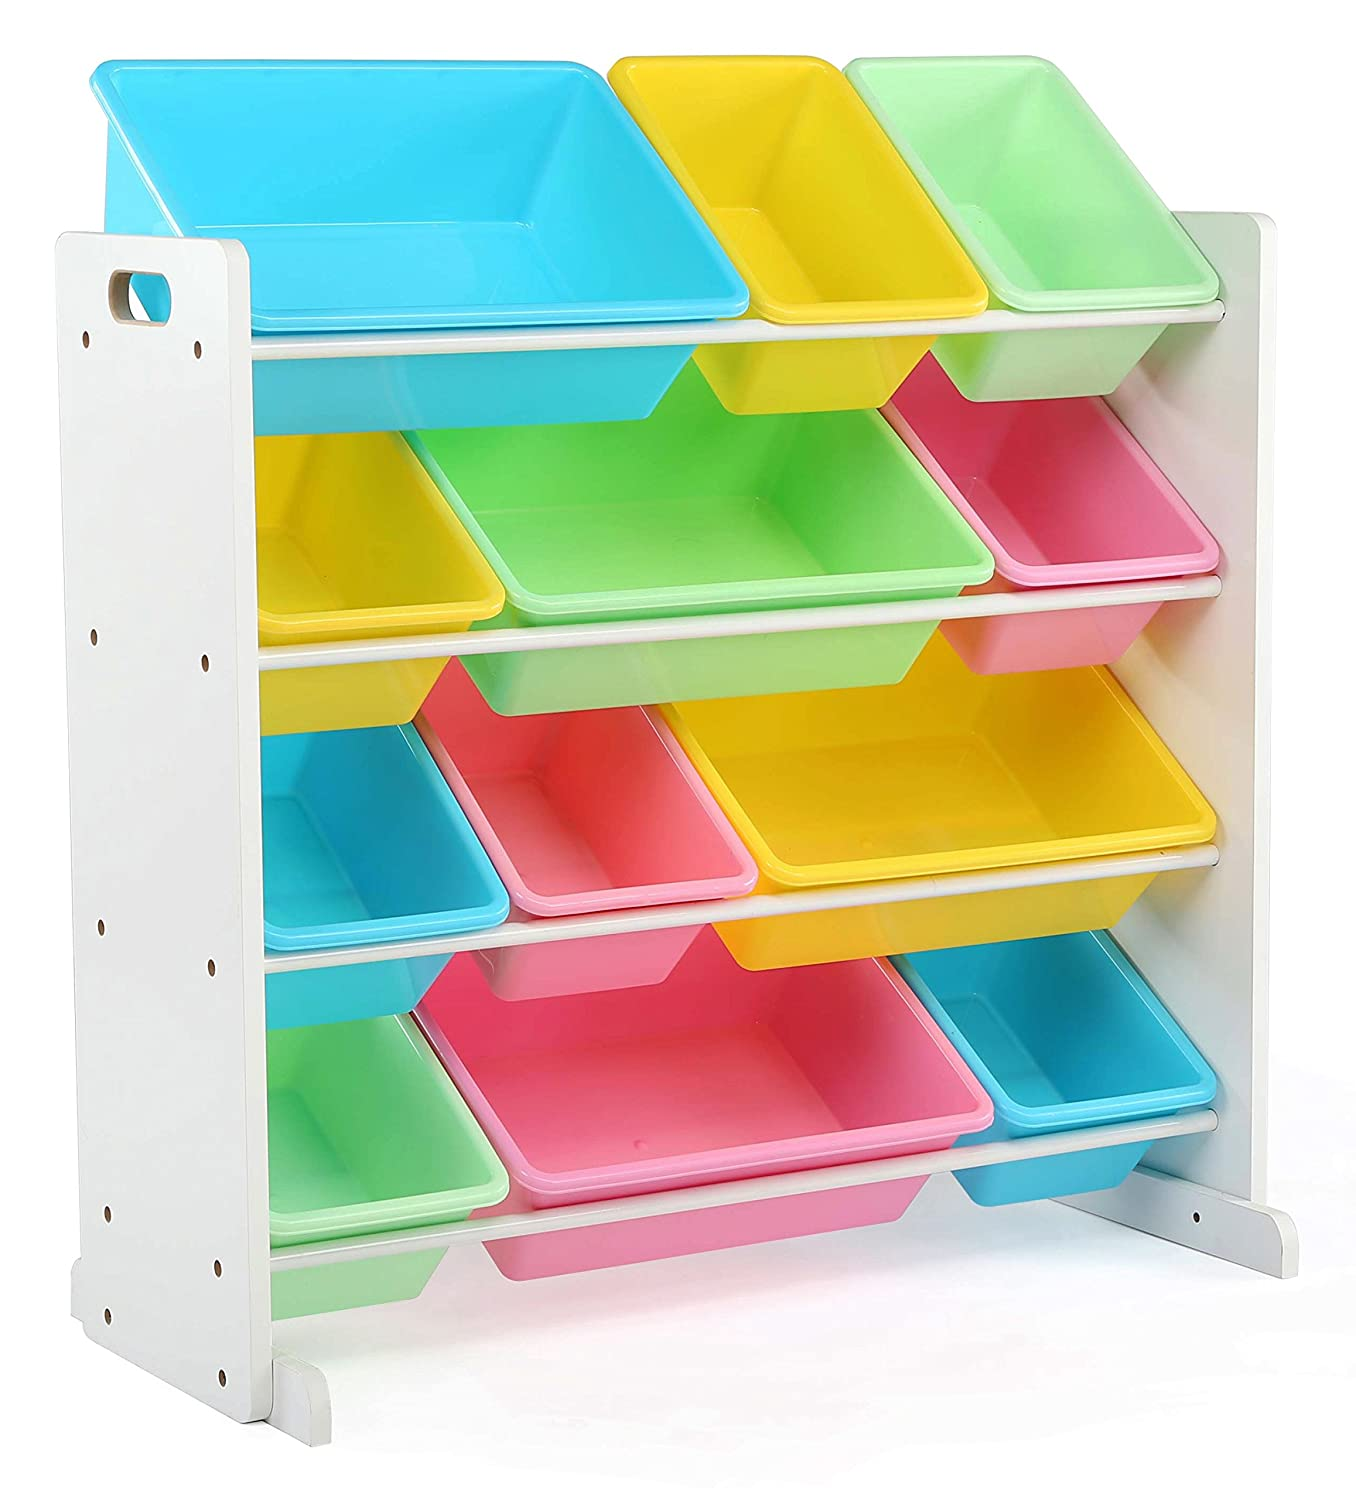 Amazon.com Tot Tutors Kidsu0027 Toy Storage Organizer with 12 Plastic Bins White/Pastel (Pastel Collection) Kitchen u0026 Dining  sc 1 st  Amazon.com & Amazon.com: Tot Tutors Kidsu0027 Toy Storage Organizer with 12 Plastic ... Aboutintivar.Com